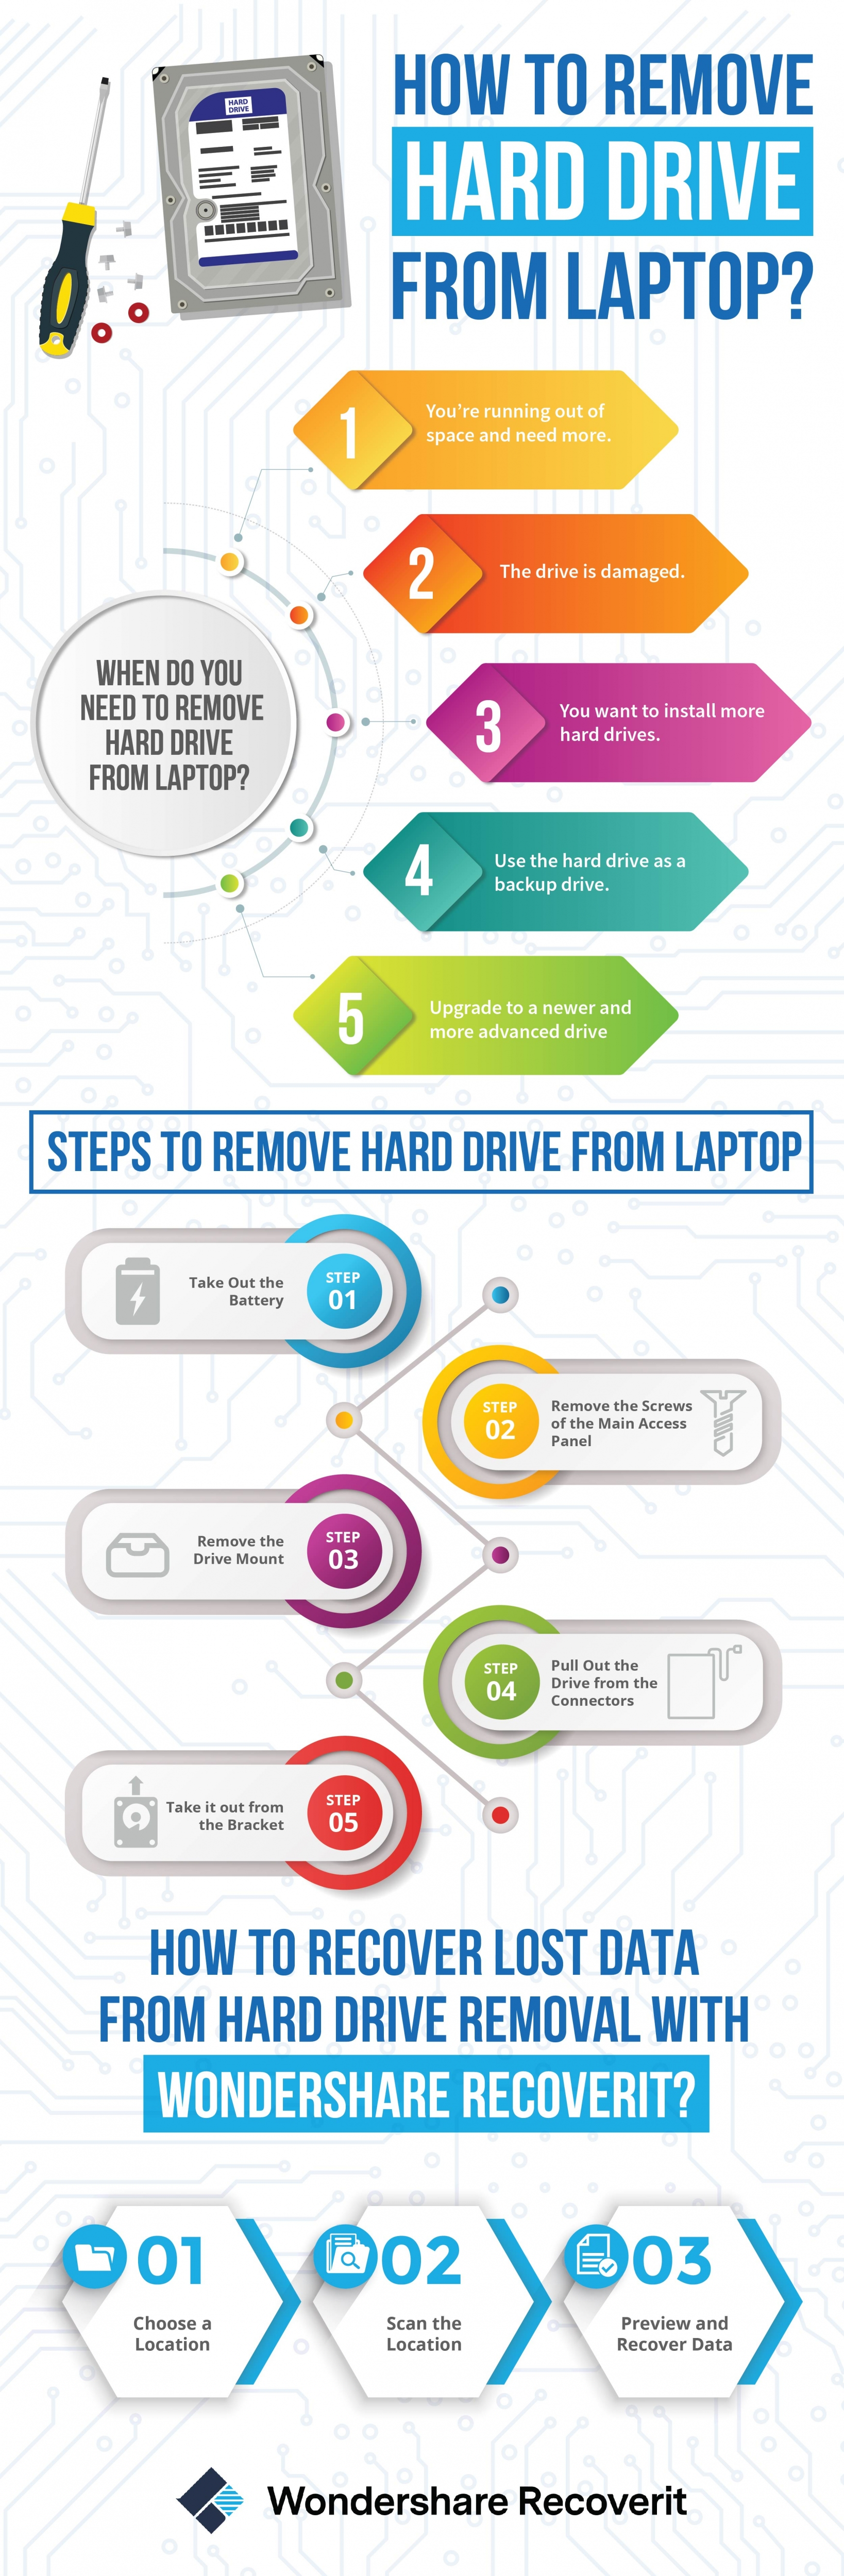 How to Remove Hard Drive from Laptop Easily